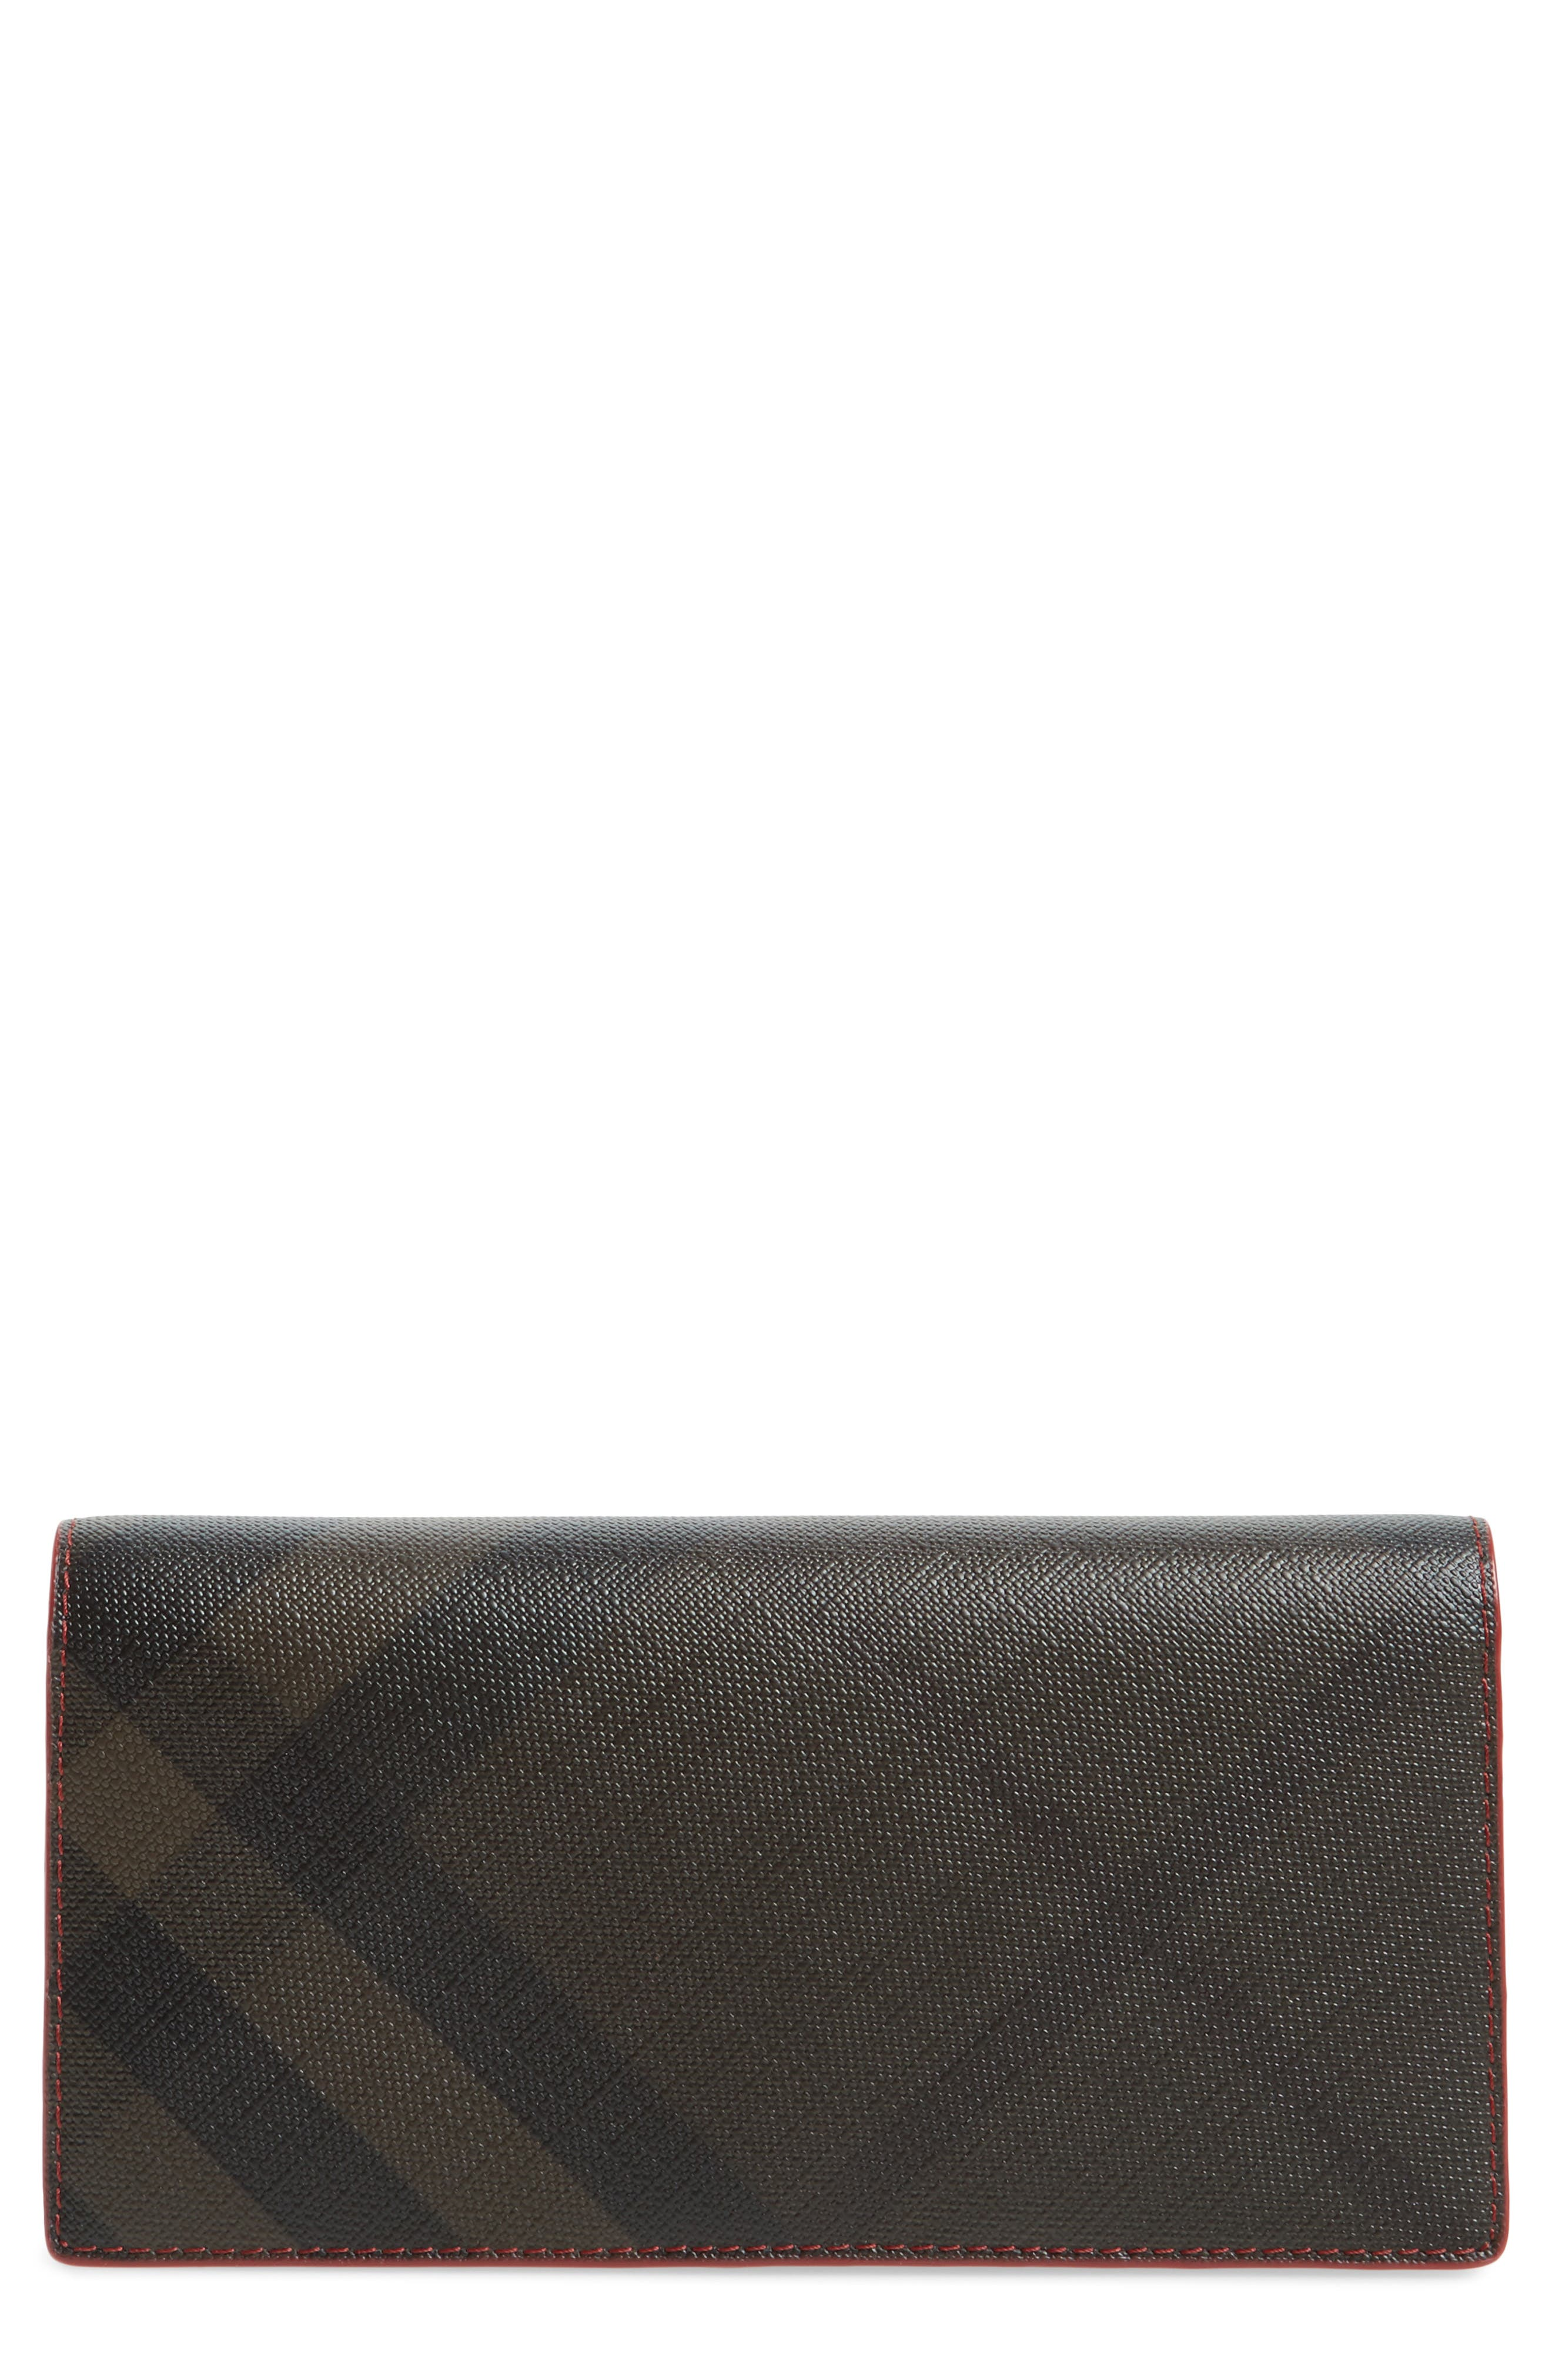 Check Wallet,                         Main,                         color, Chocolate/ Red